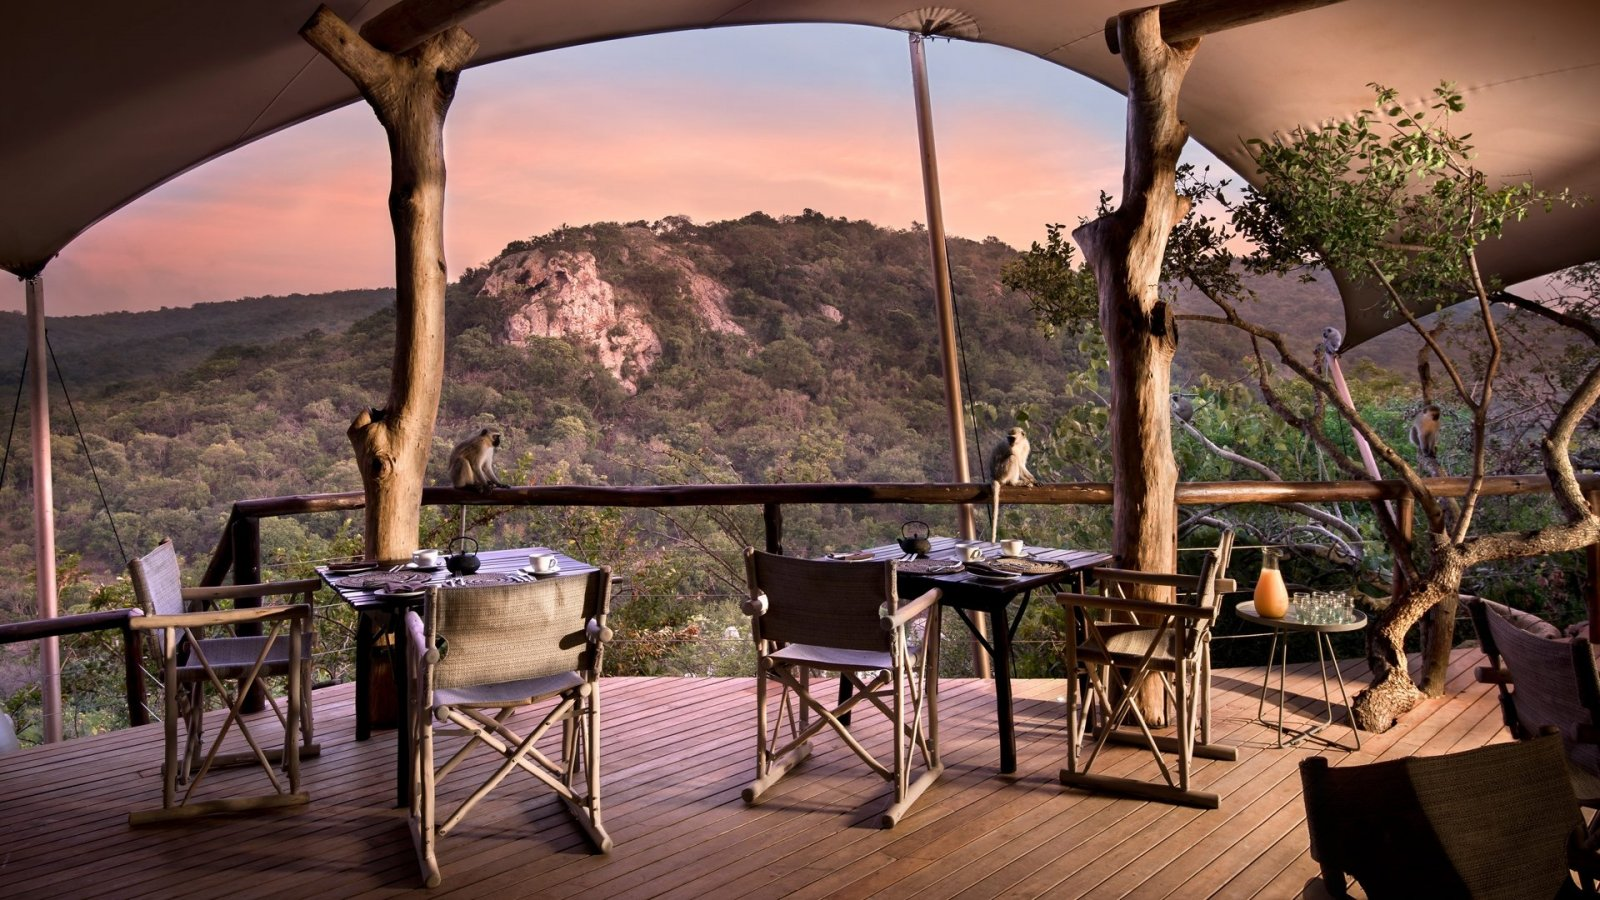 phinda-rock-lodge-dining-area-luxury-safari-south-africa.jpg